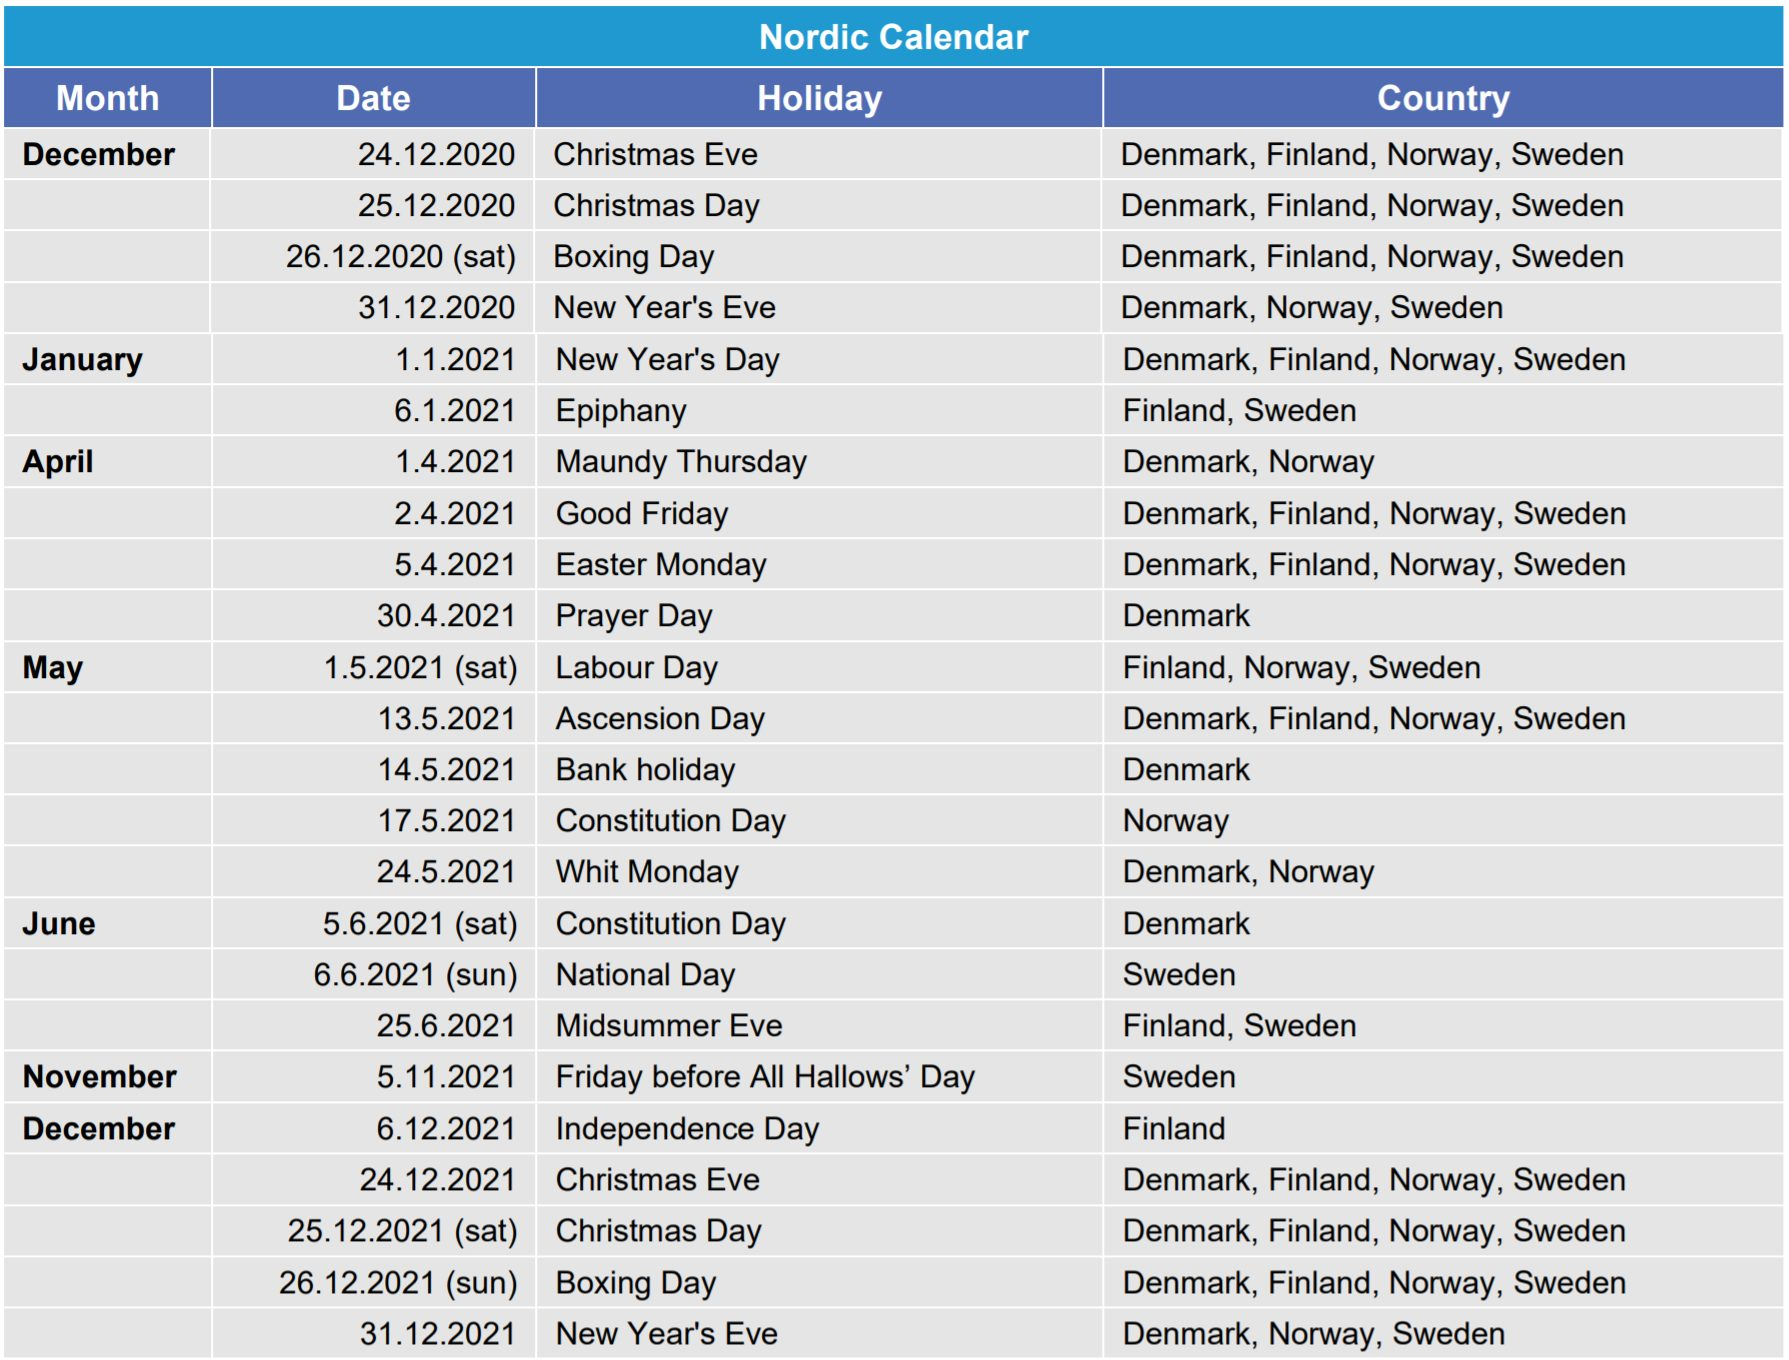 This table provides the Nordic Calendar. The list shows holidays in Finland, Sweden, Denmark and Norway. eSett does not perform imbalance settlement on weekends or midweek holidays, which are listed in the appendix Nordic Calendar. eSett Oy